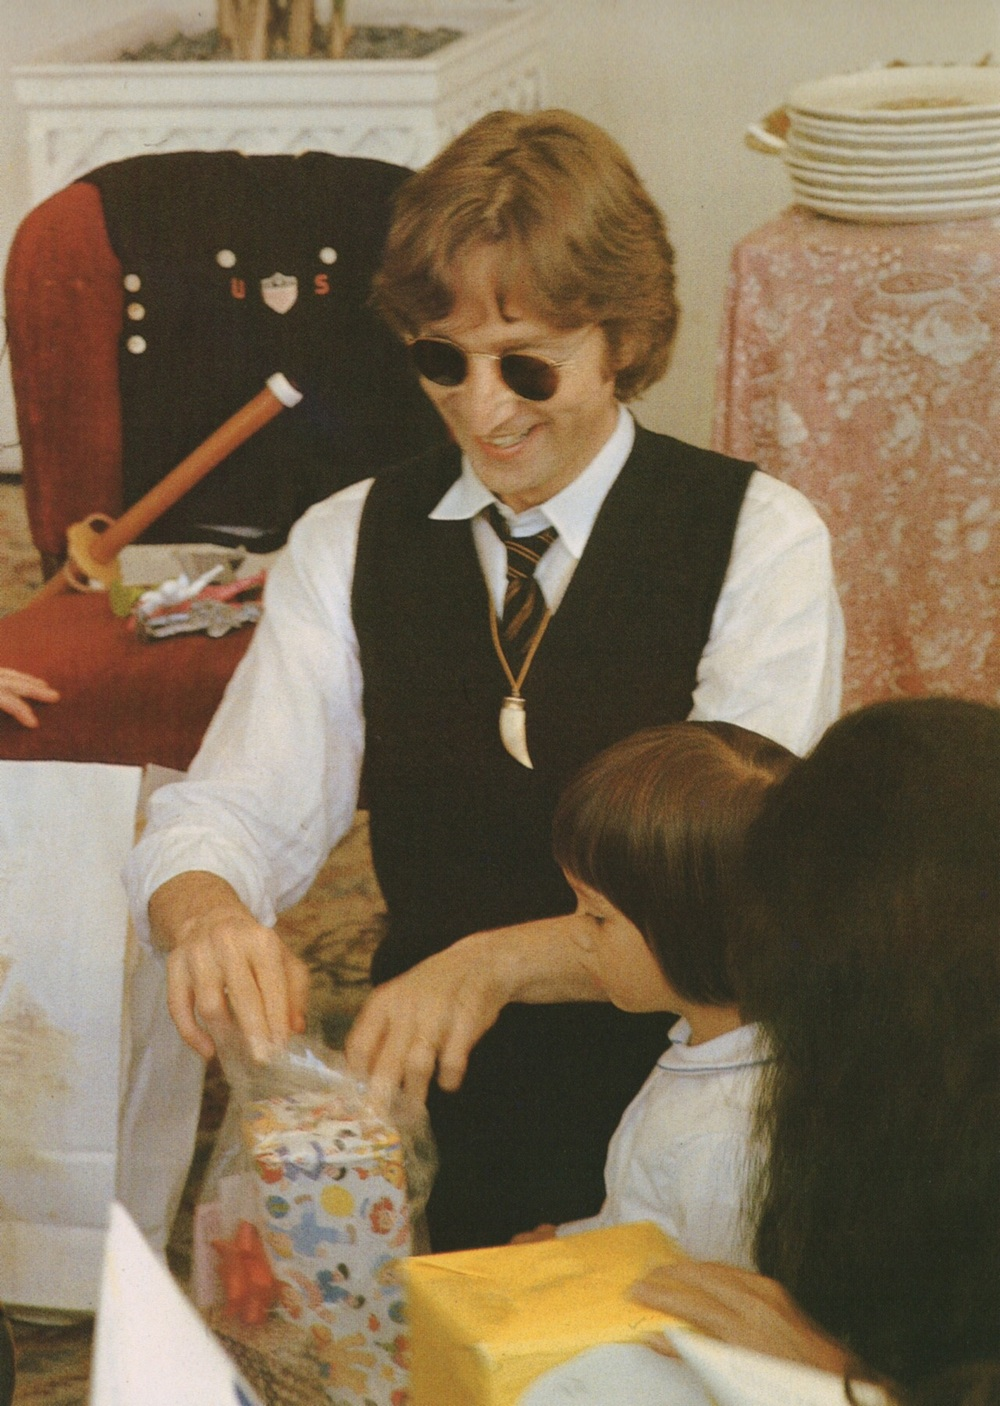 John Lennon and Yoko with Sean Lennon, 1978.